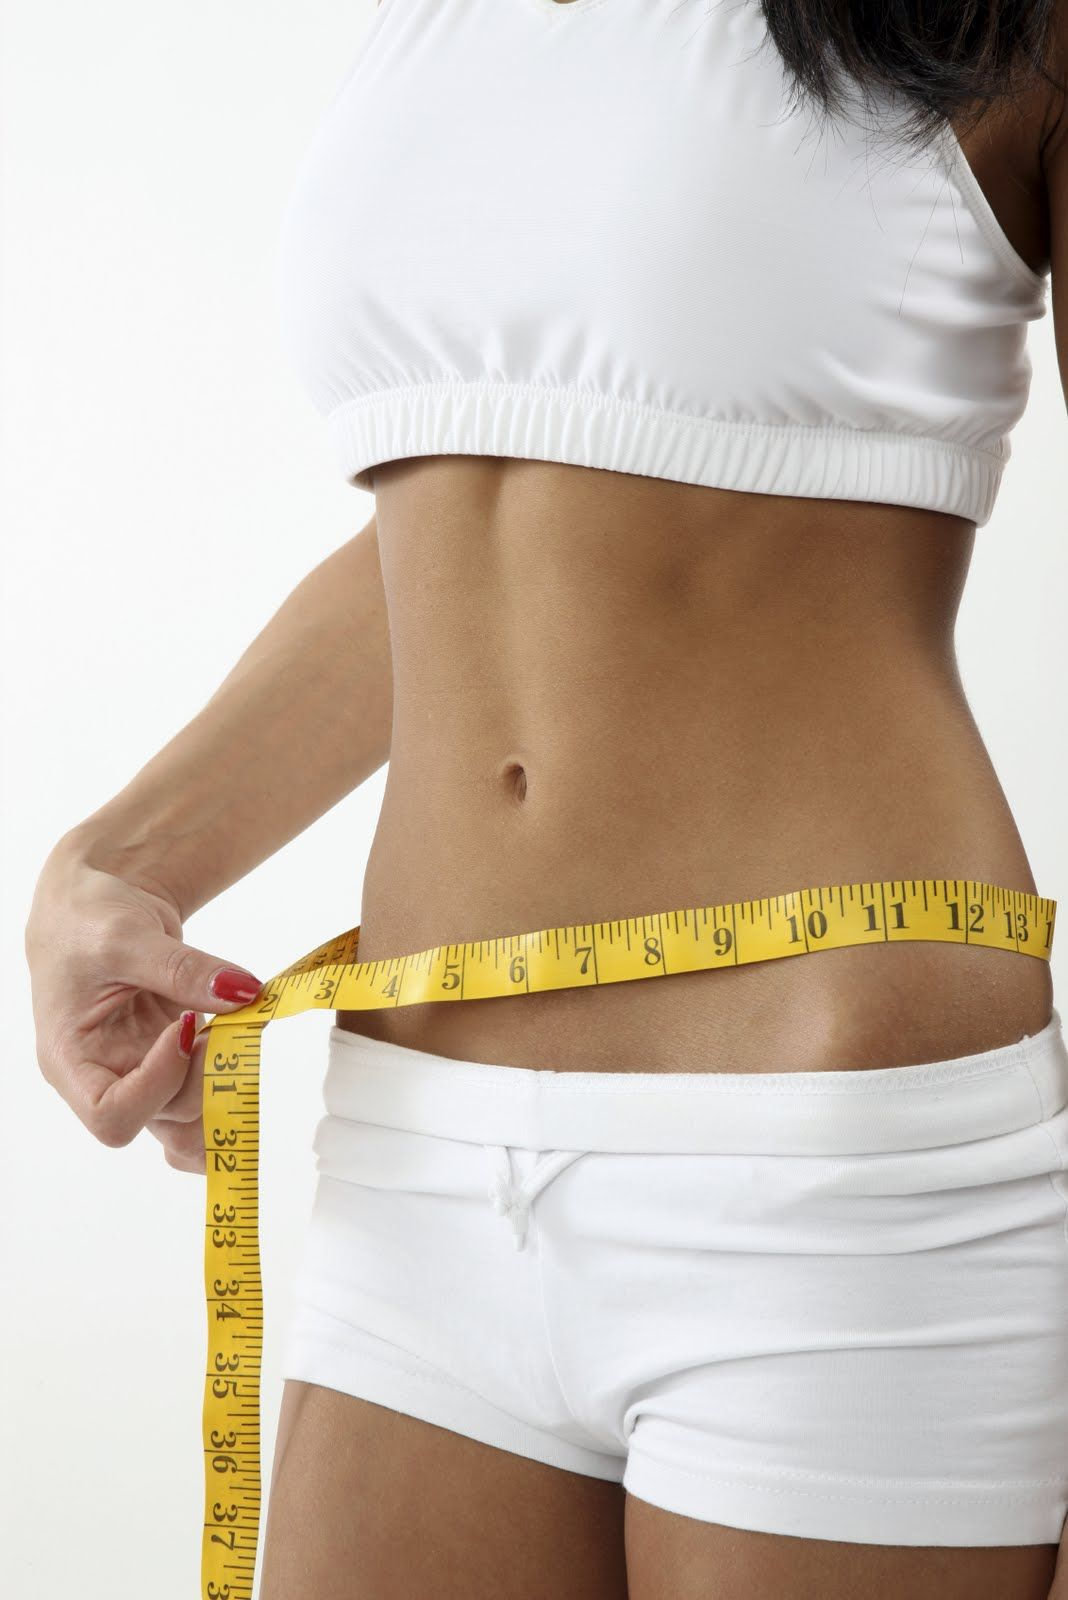 dr oz top weight loss supplements